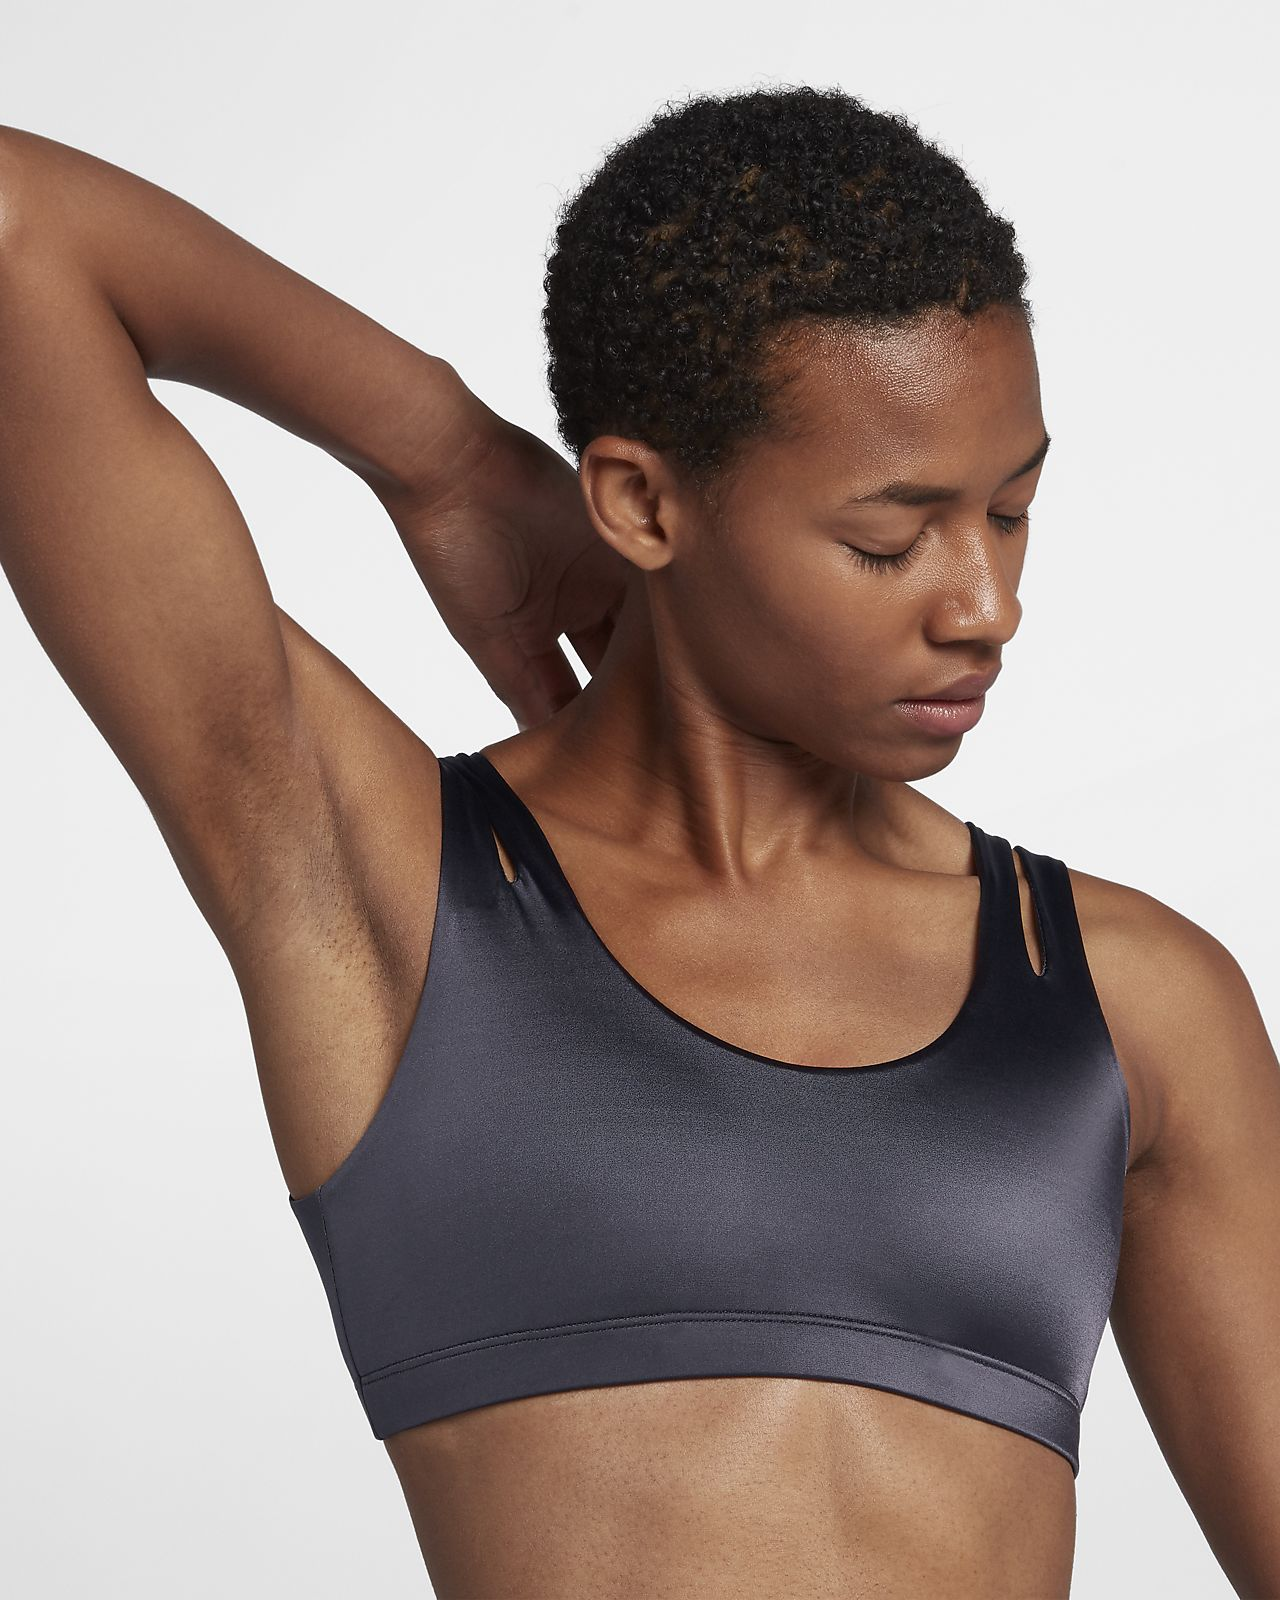 a3f6ea4126a Nike Indy Shine Women s Light-Support Sports Bra. Nike.com CA